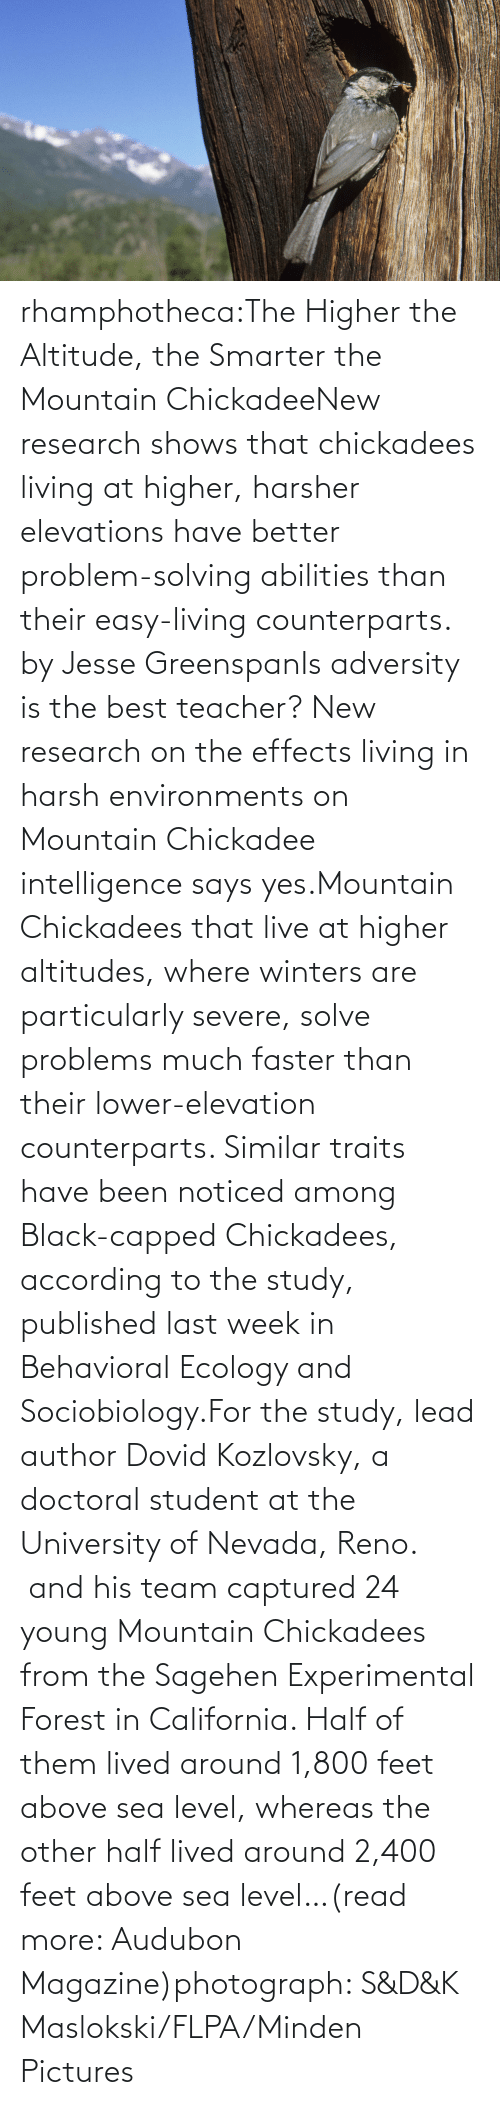 chickadee: rhamphotheca:The Higher the Altitude, the Smarter the Mountain ChickadeeNew research shows that chickadees living at higher, harsher elevations have better problem-solving abilities than their easy-living counterparts. by Jesse GreenspanIs adversity is the best teacher? New research on the effects living in harsh environments on Mountain Chickadee intelligence says yes.Mountain Chickadees that live at higher altitudes, where winters are  particularly severe, solve problems much faster than their  lower-elevation counterparts. Similar traits have been noticed among  Black-capped Chickadees, according to the study, published last week in Behavioral Ecology and Sociobiology.For the study, lead author Dovid Kozlovsky, a doctoral student at the  University of Nevada, Reno.  and his team captured 24 young Mountain  Chickadees from the Sagehen Experimental Forest in California. Half of  them lived around 1,800 feet above sea level, whereas the other half  lived around 2,400 feet above sea level…(read more: Audubon Magazine)photograph:  S&D&K Maslokski/FLPA/Minden Pictures